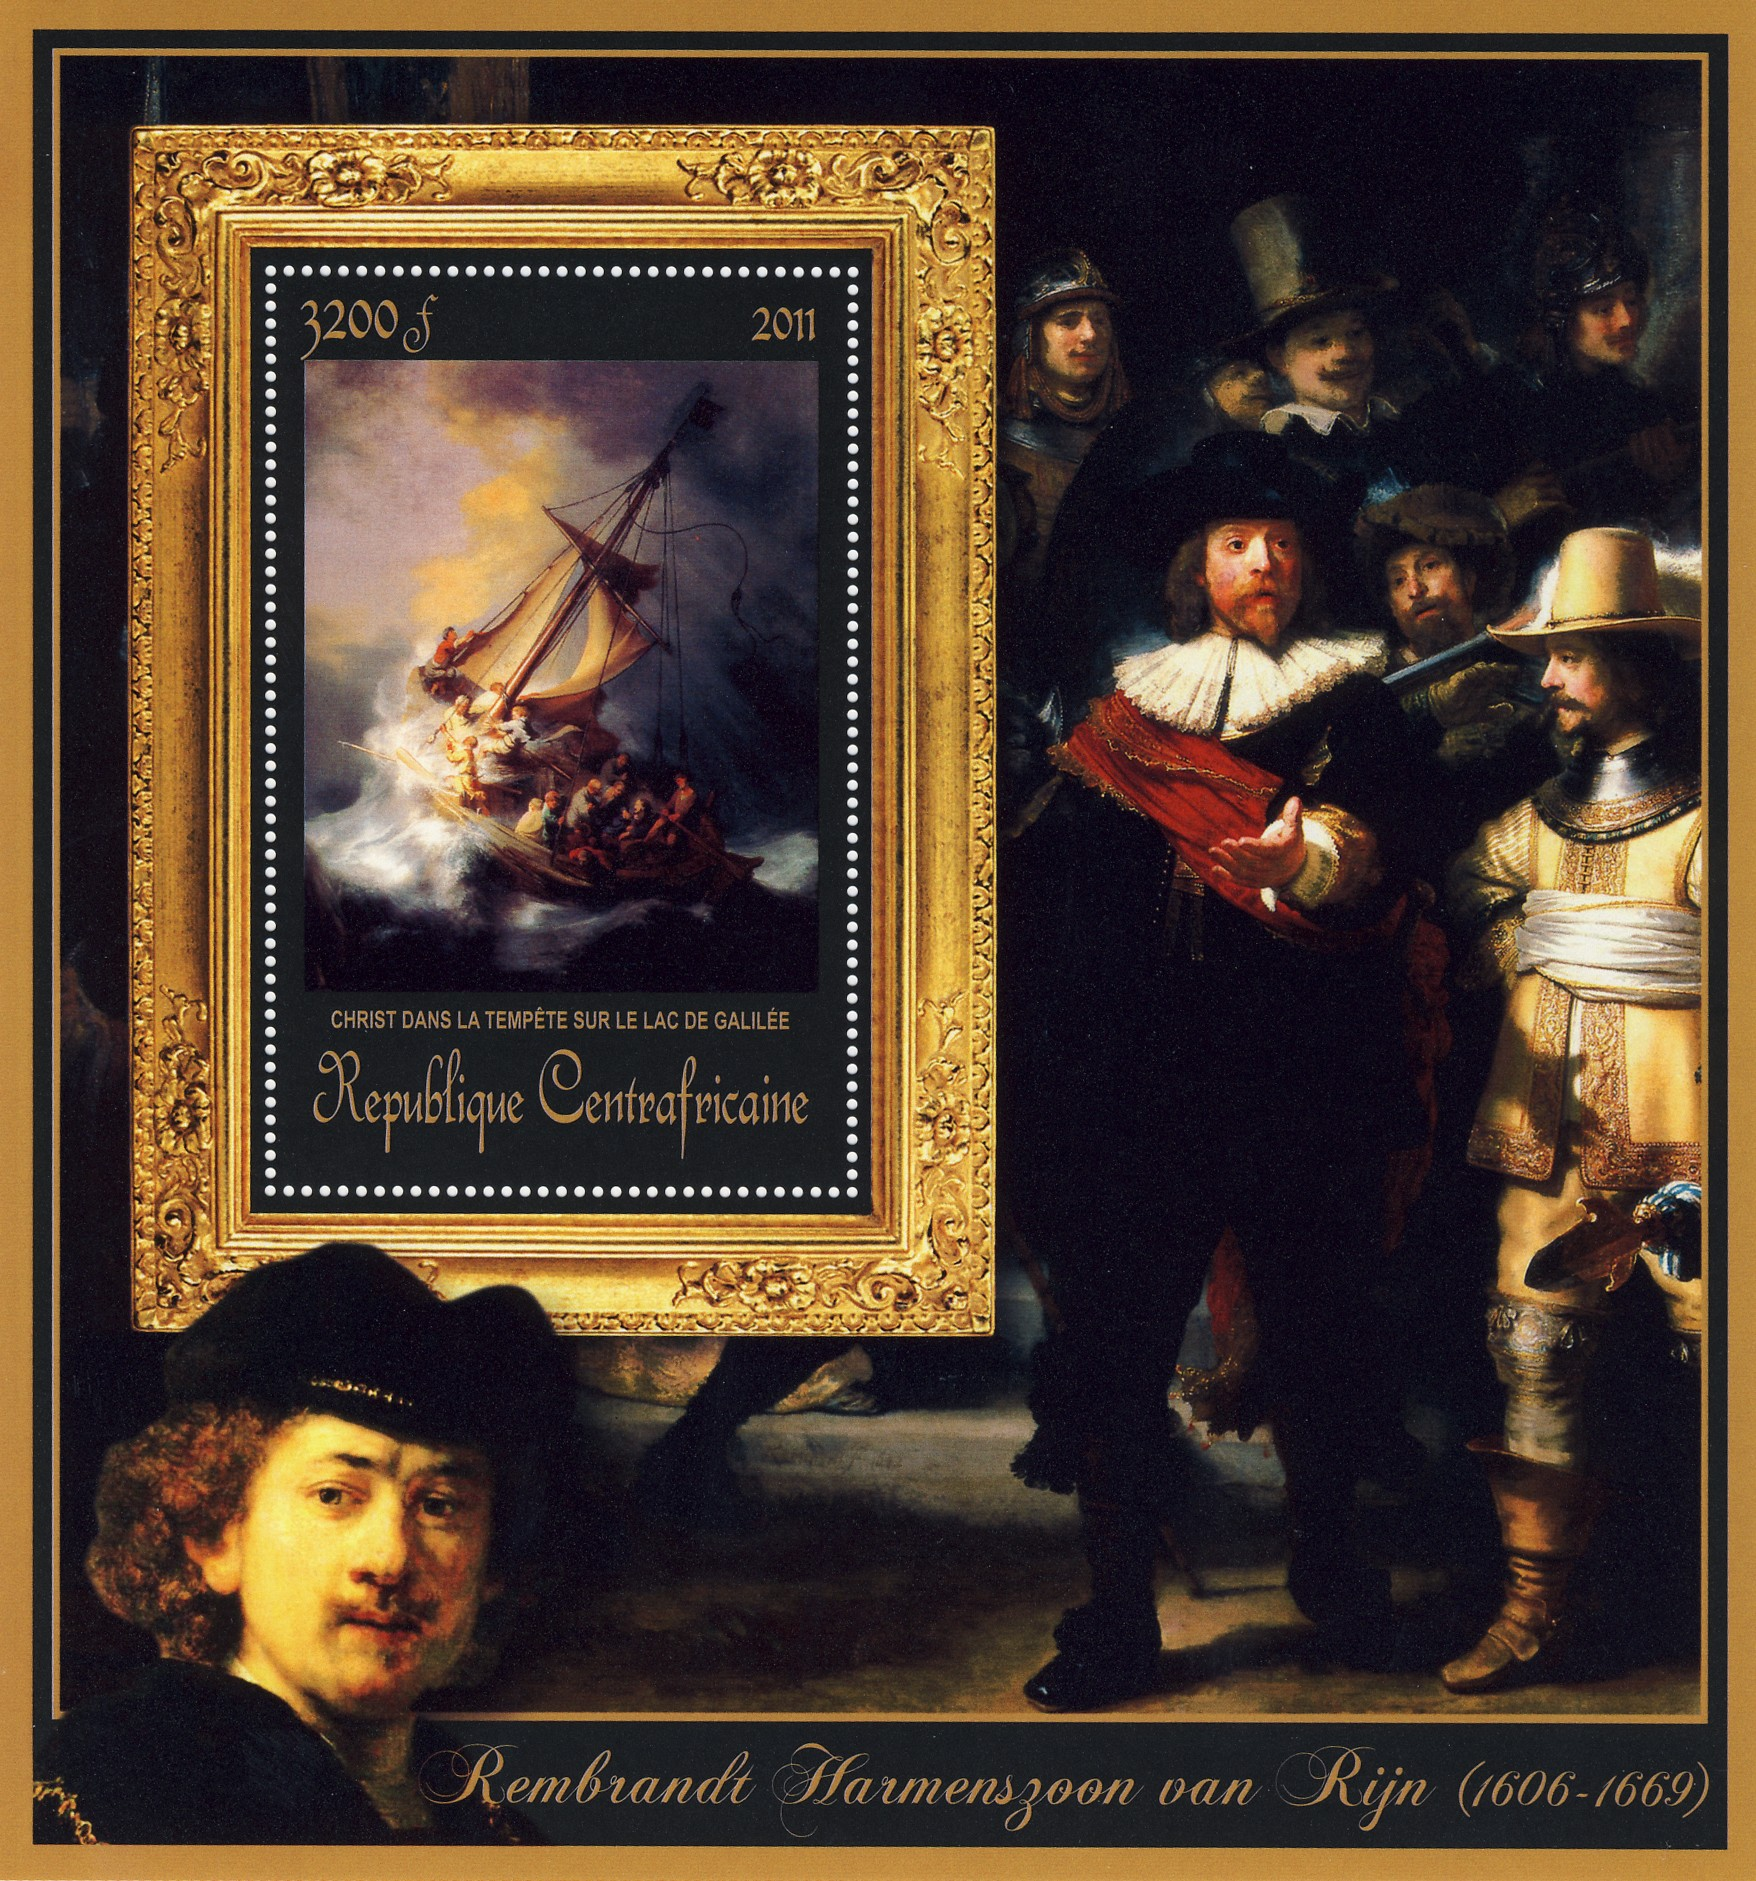 Special Block of Paintings of  Rembrandt van Rijn, (Christ dans la tempete sur le lac de Galilee). - Issue of Central African republic postage stamps